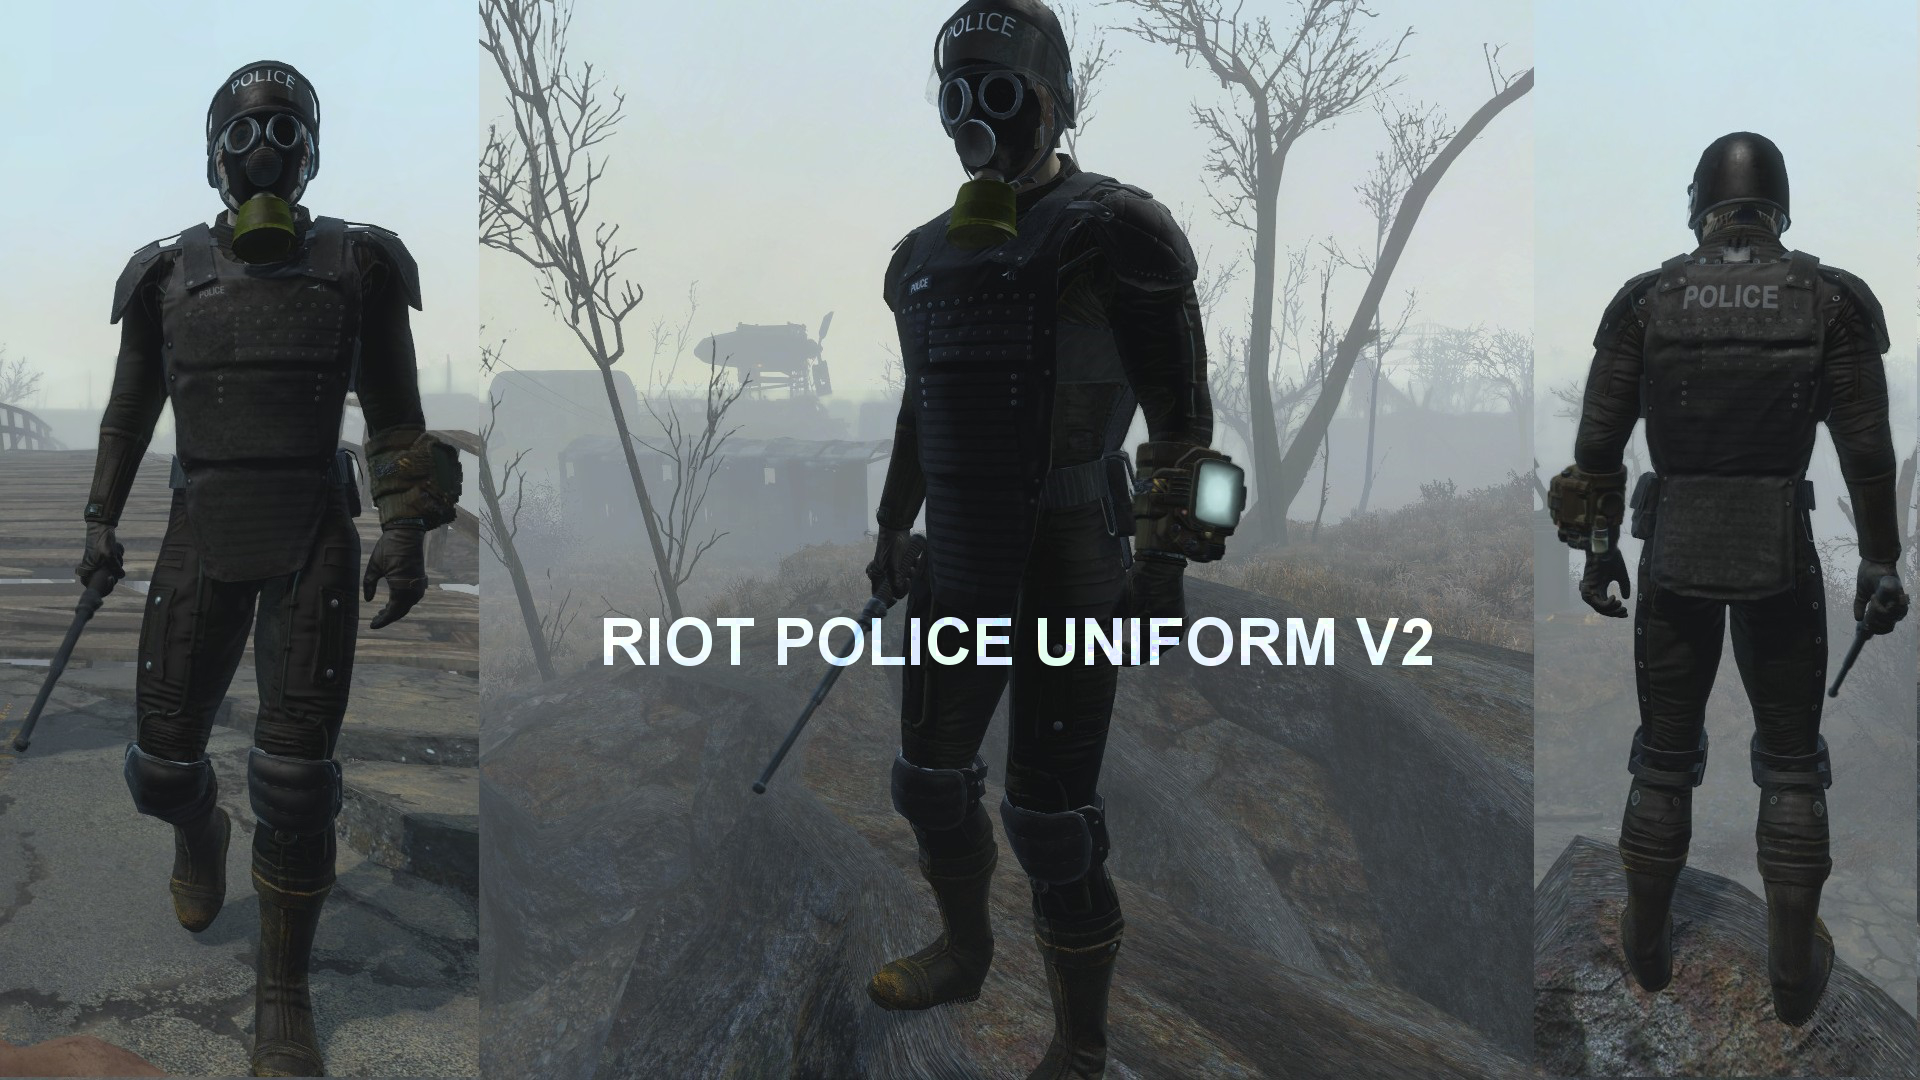 Riot vest fallout 4 mod police difference between buy stop and buy limit in forex